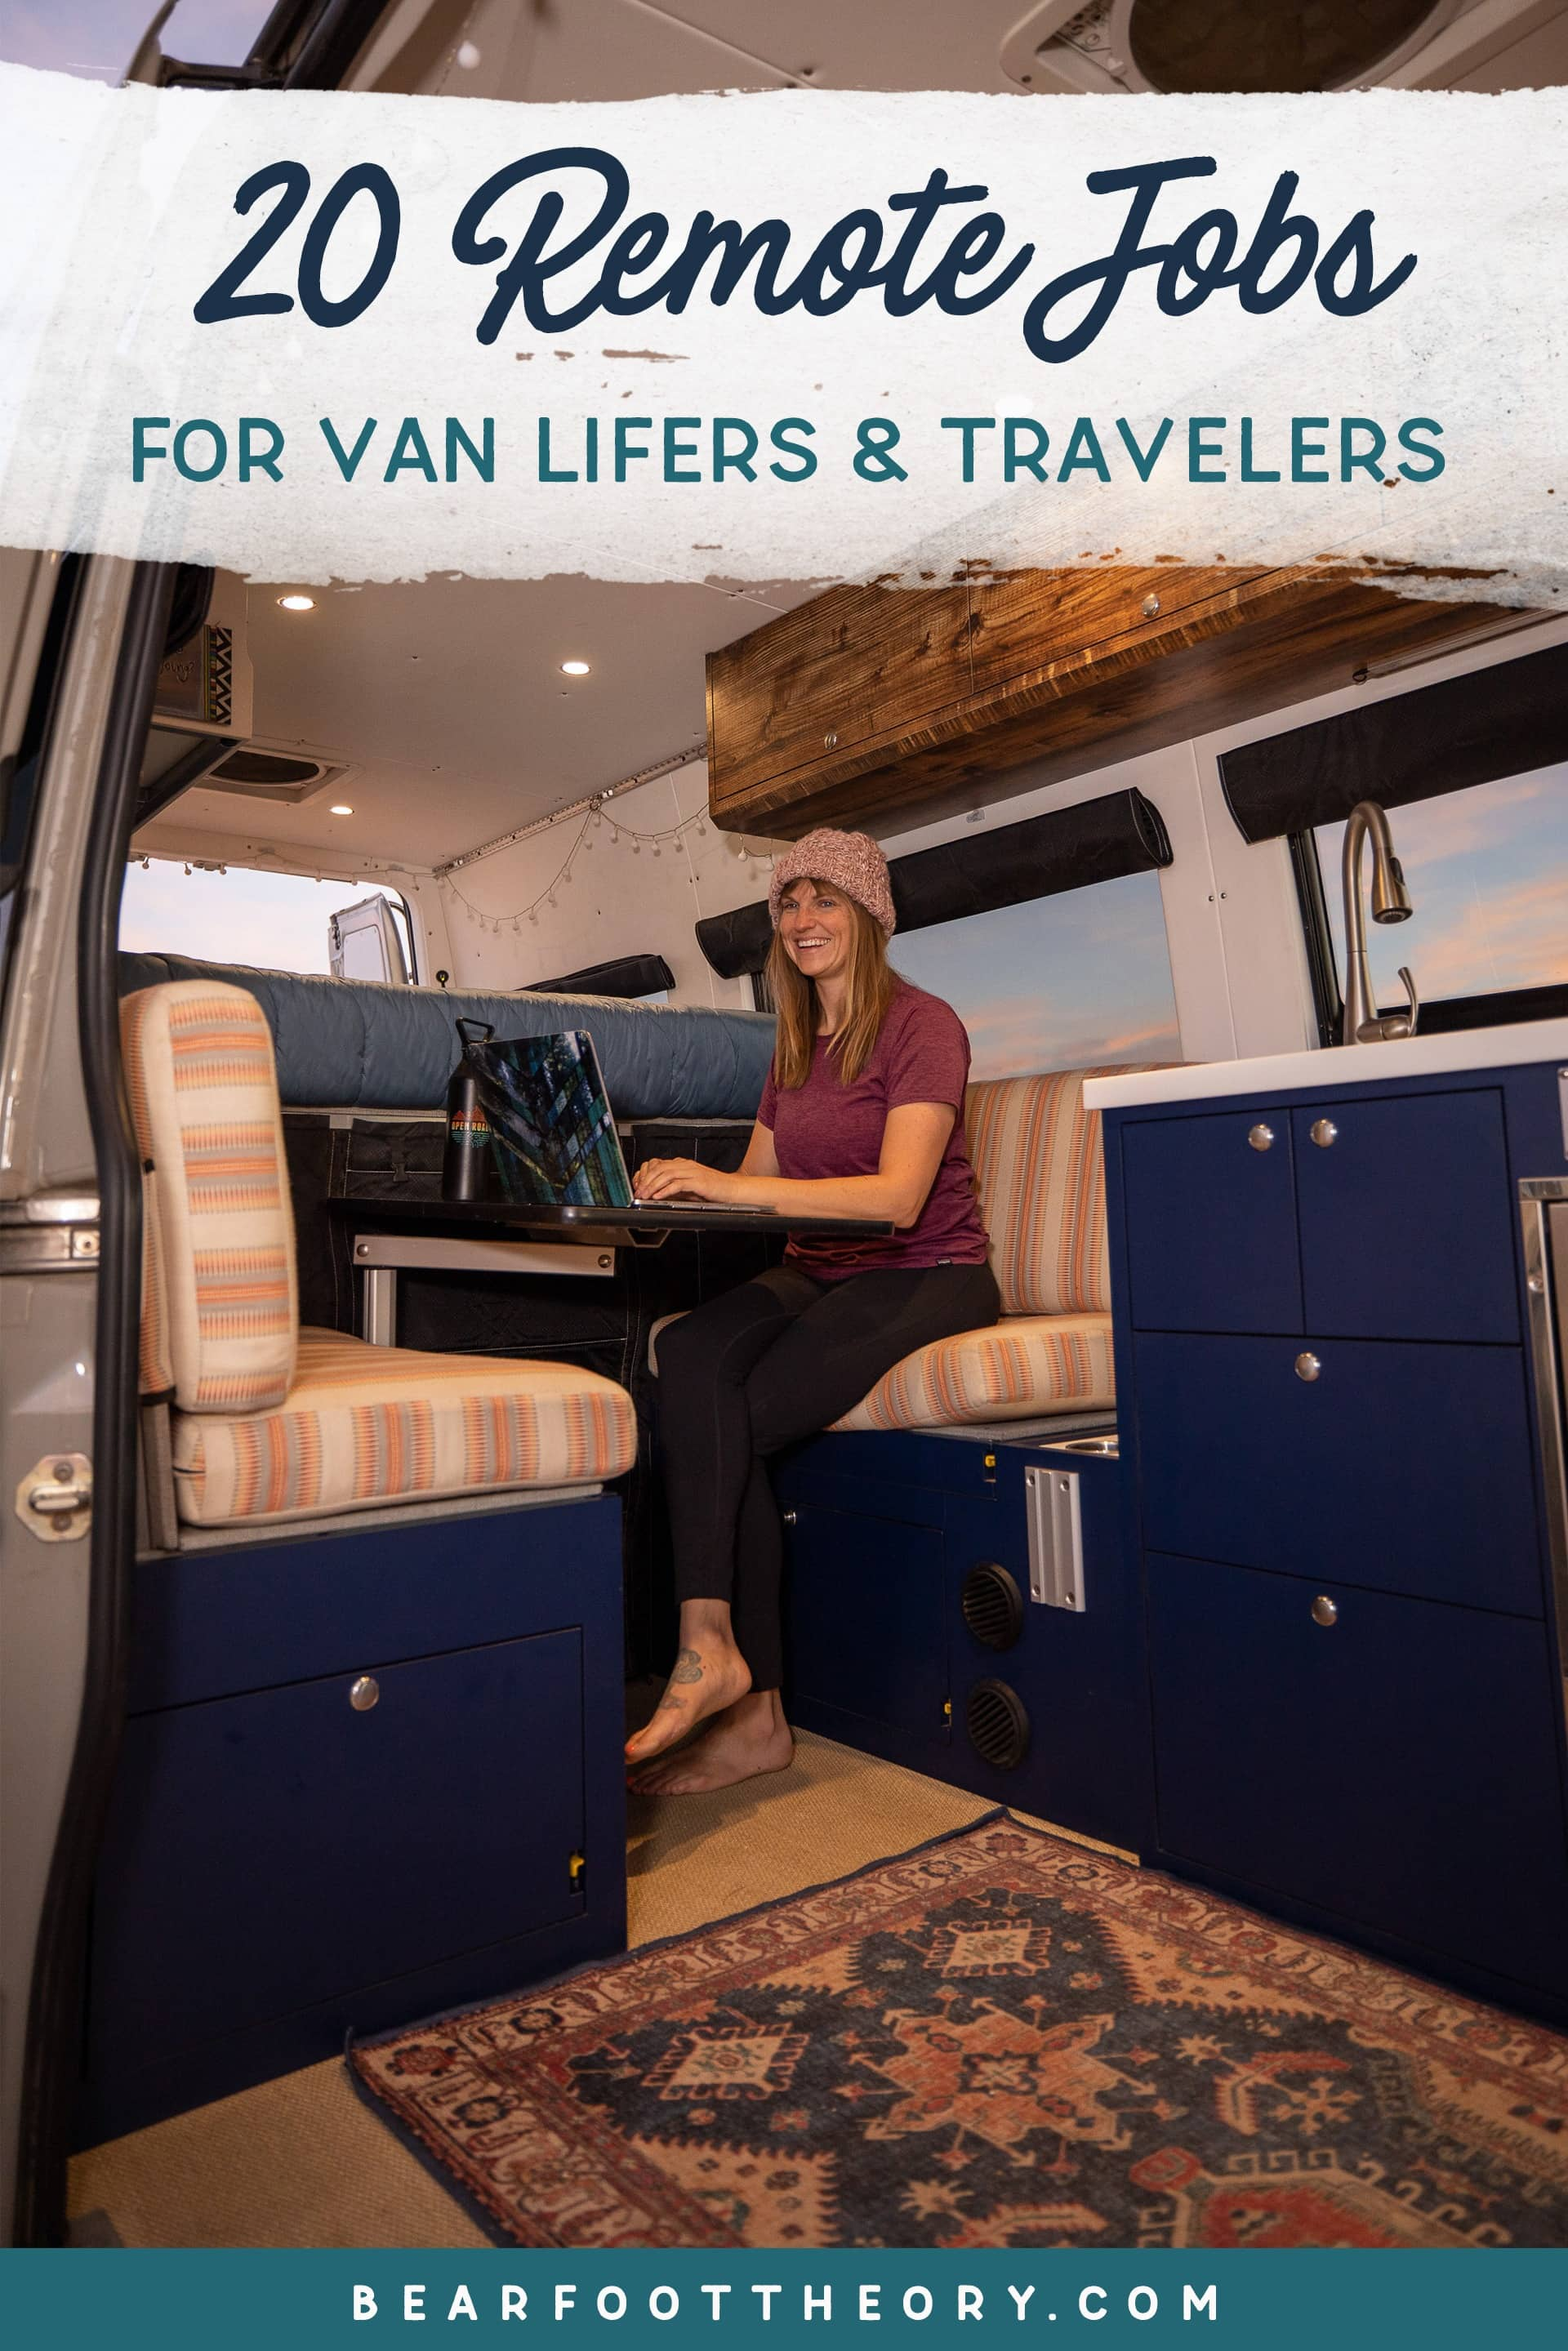 Looking for more freedom in your career? Here are remote jobs that allow you to make money as a van lifer or traveler, so you can stay on the road longer.